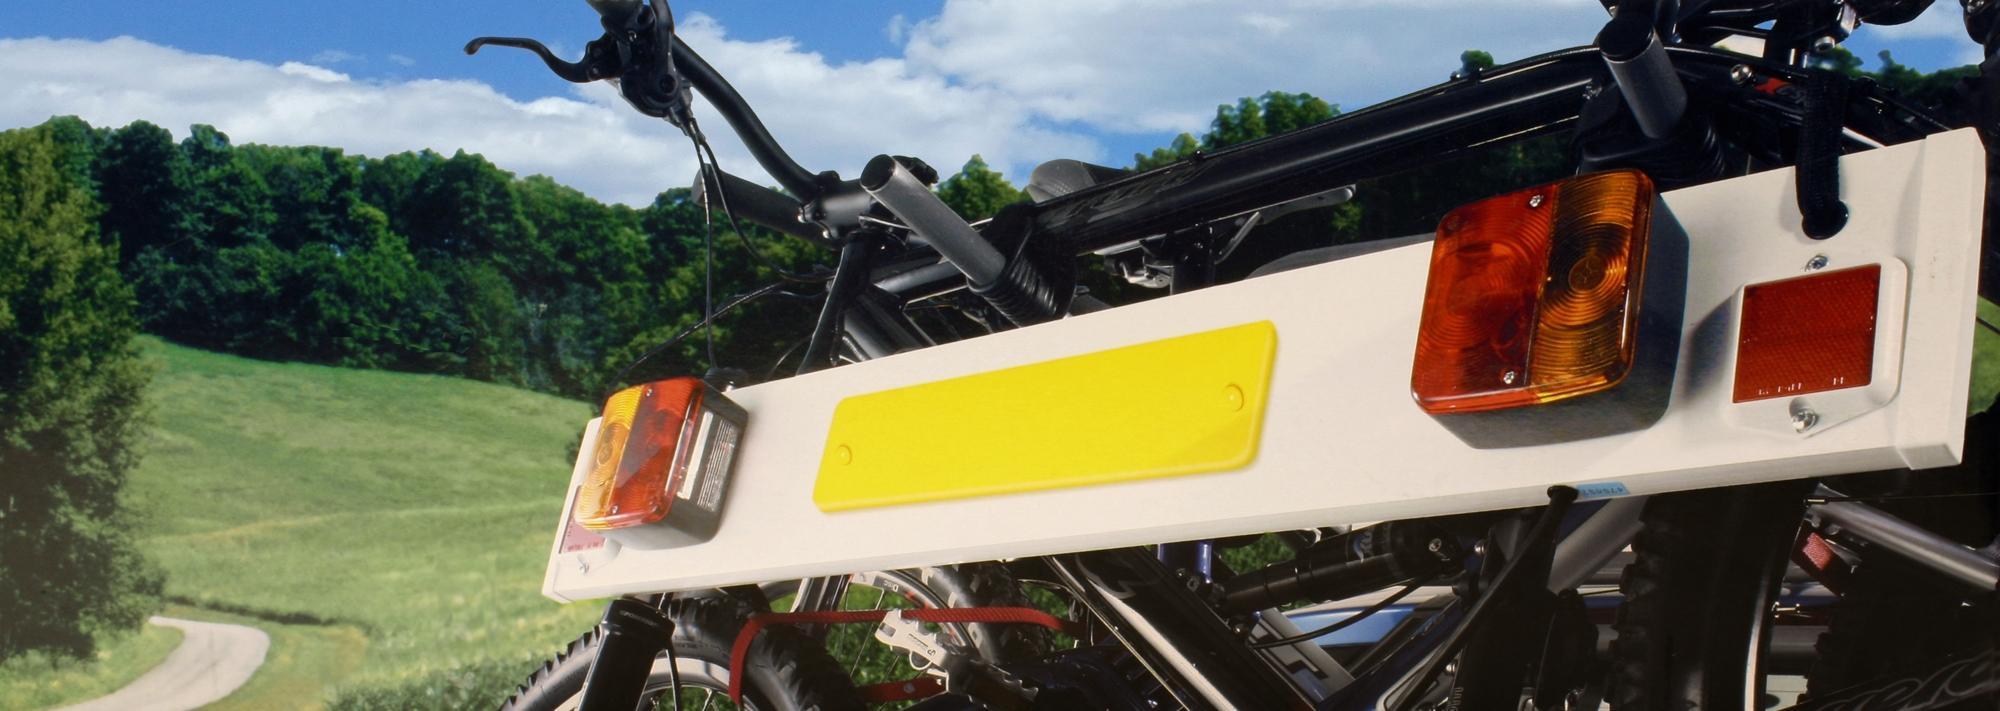 image of halfords cycle carrier lighting board